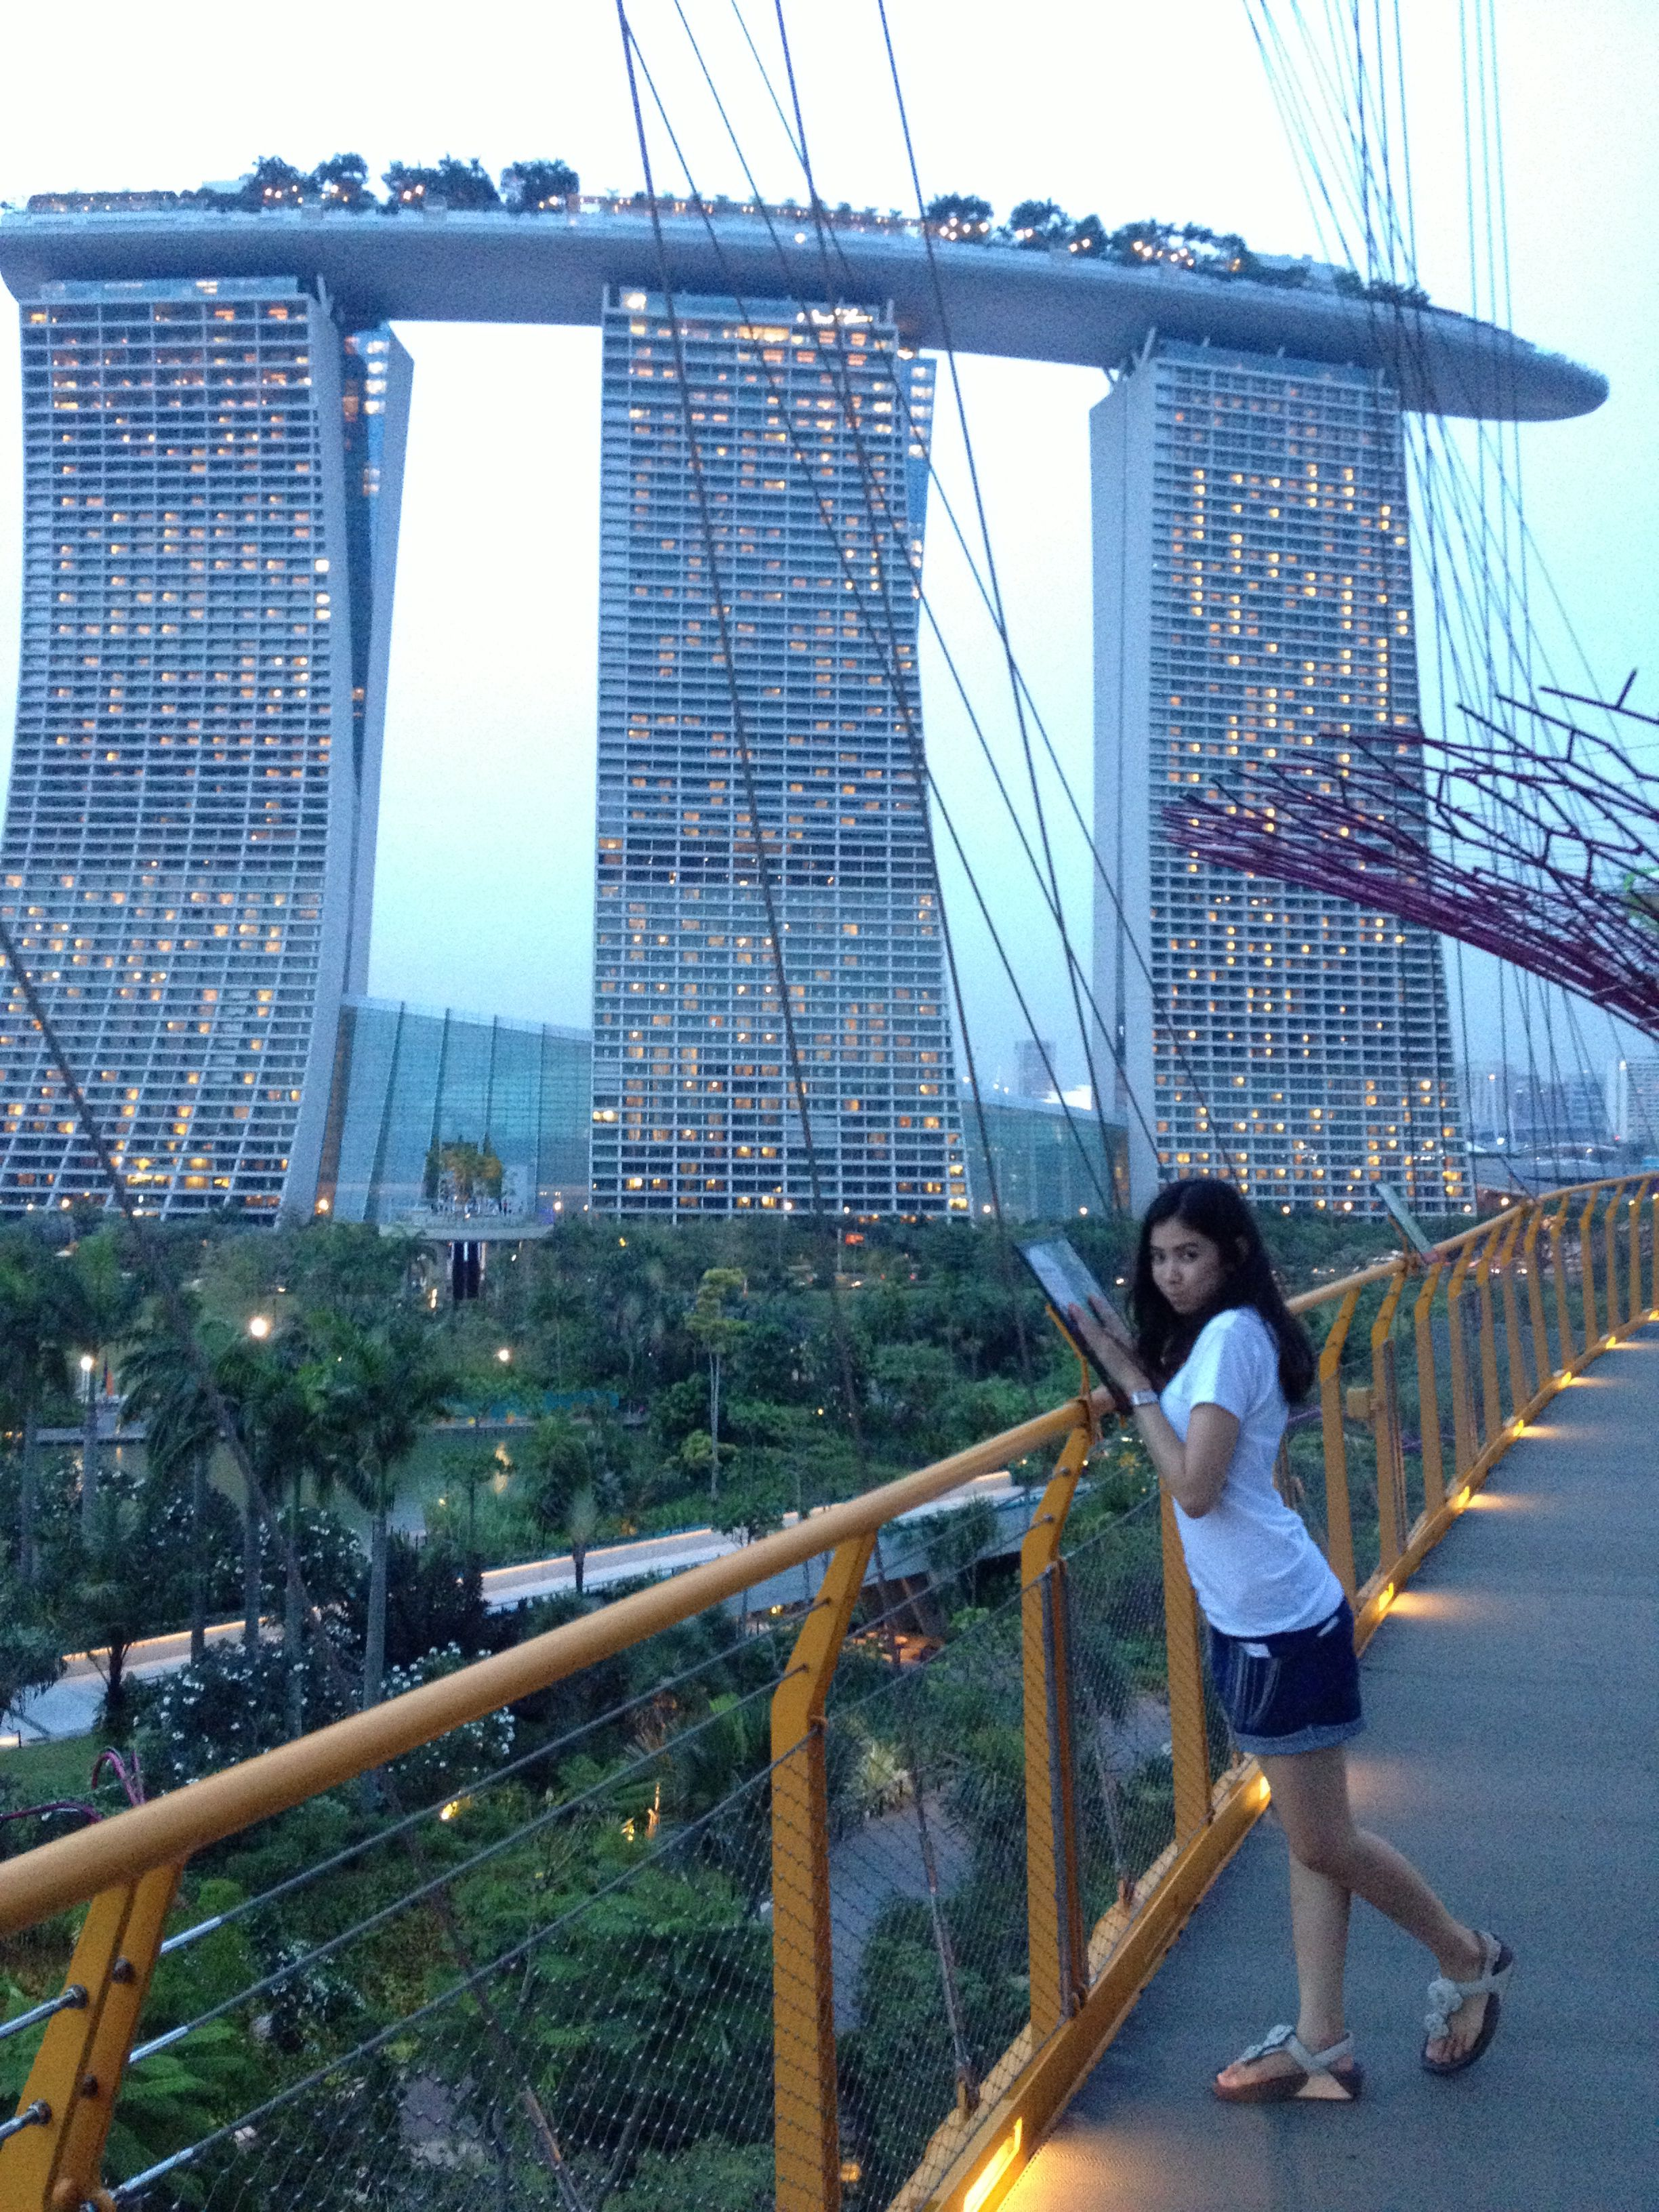 OCBC Skyway @ Garden by the bay,Marina south,Singapore  in